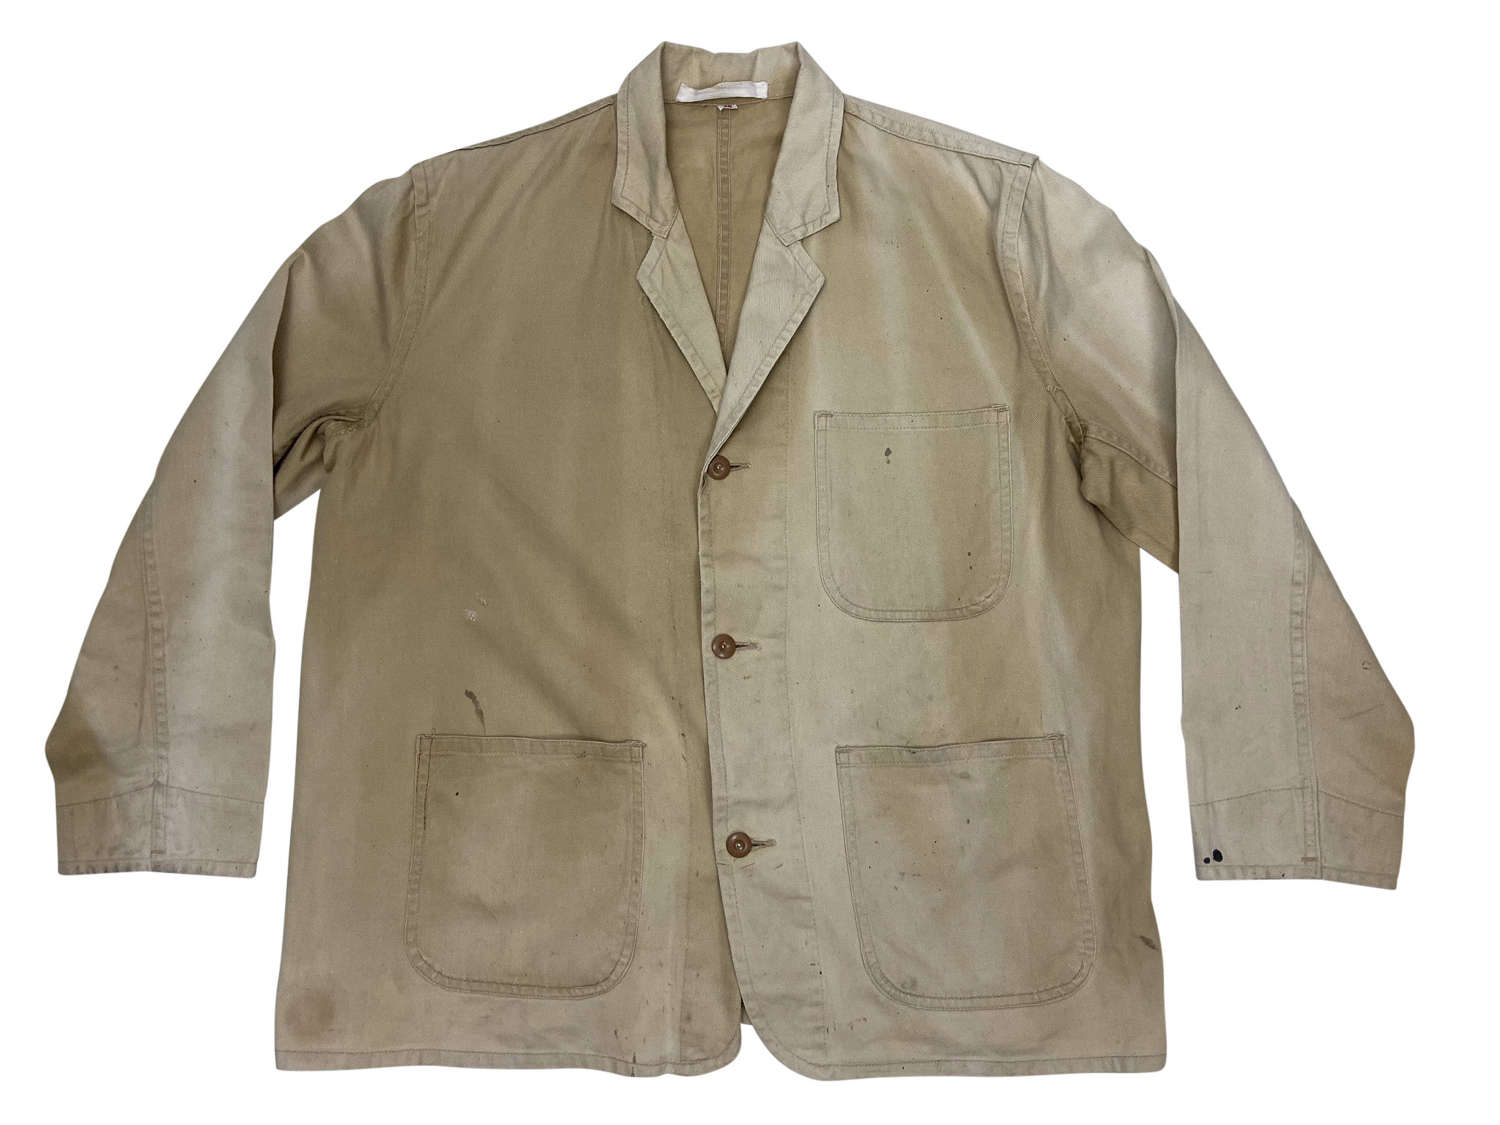 Original 1960s British Workwear Engineer's Jacket